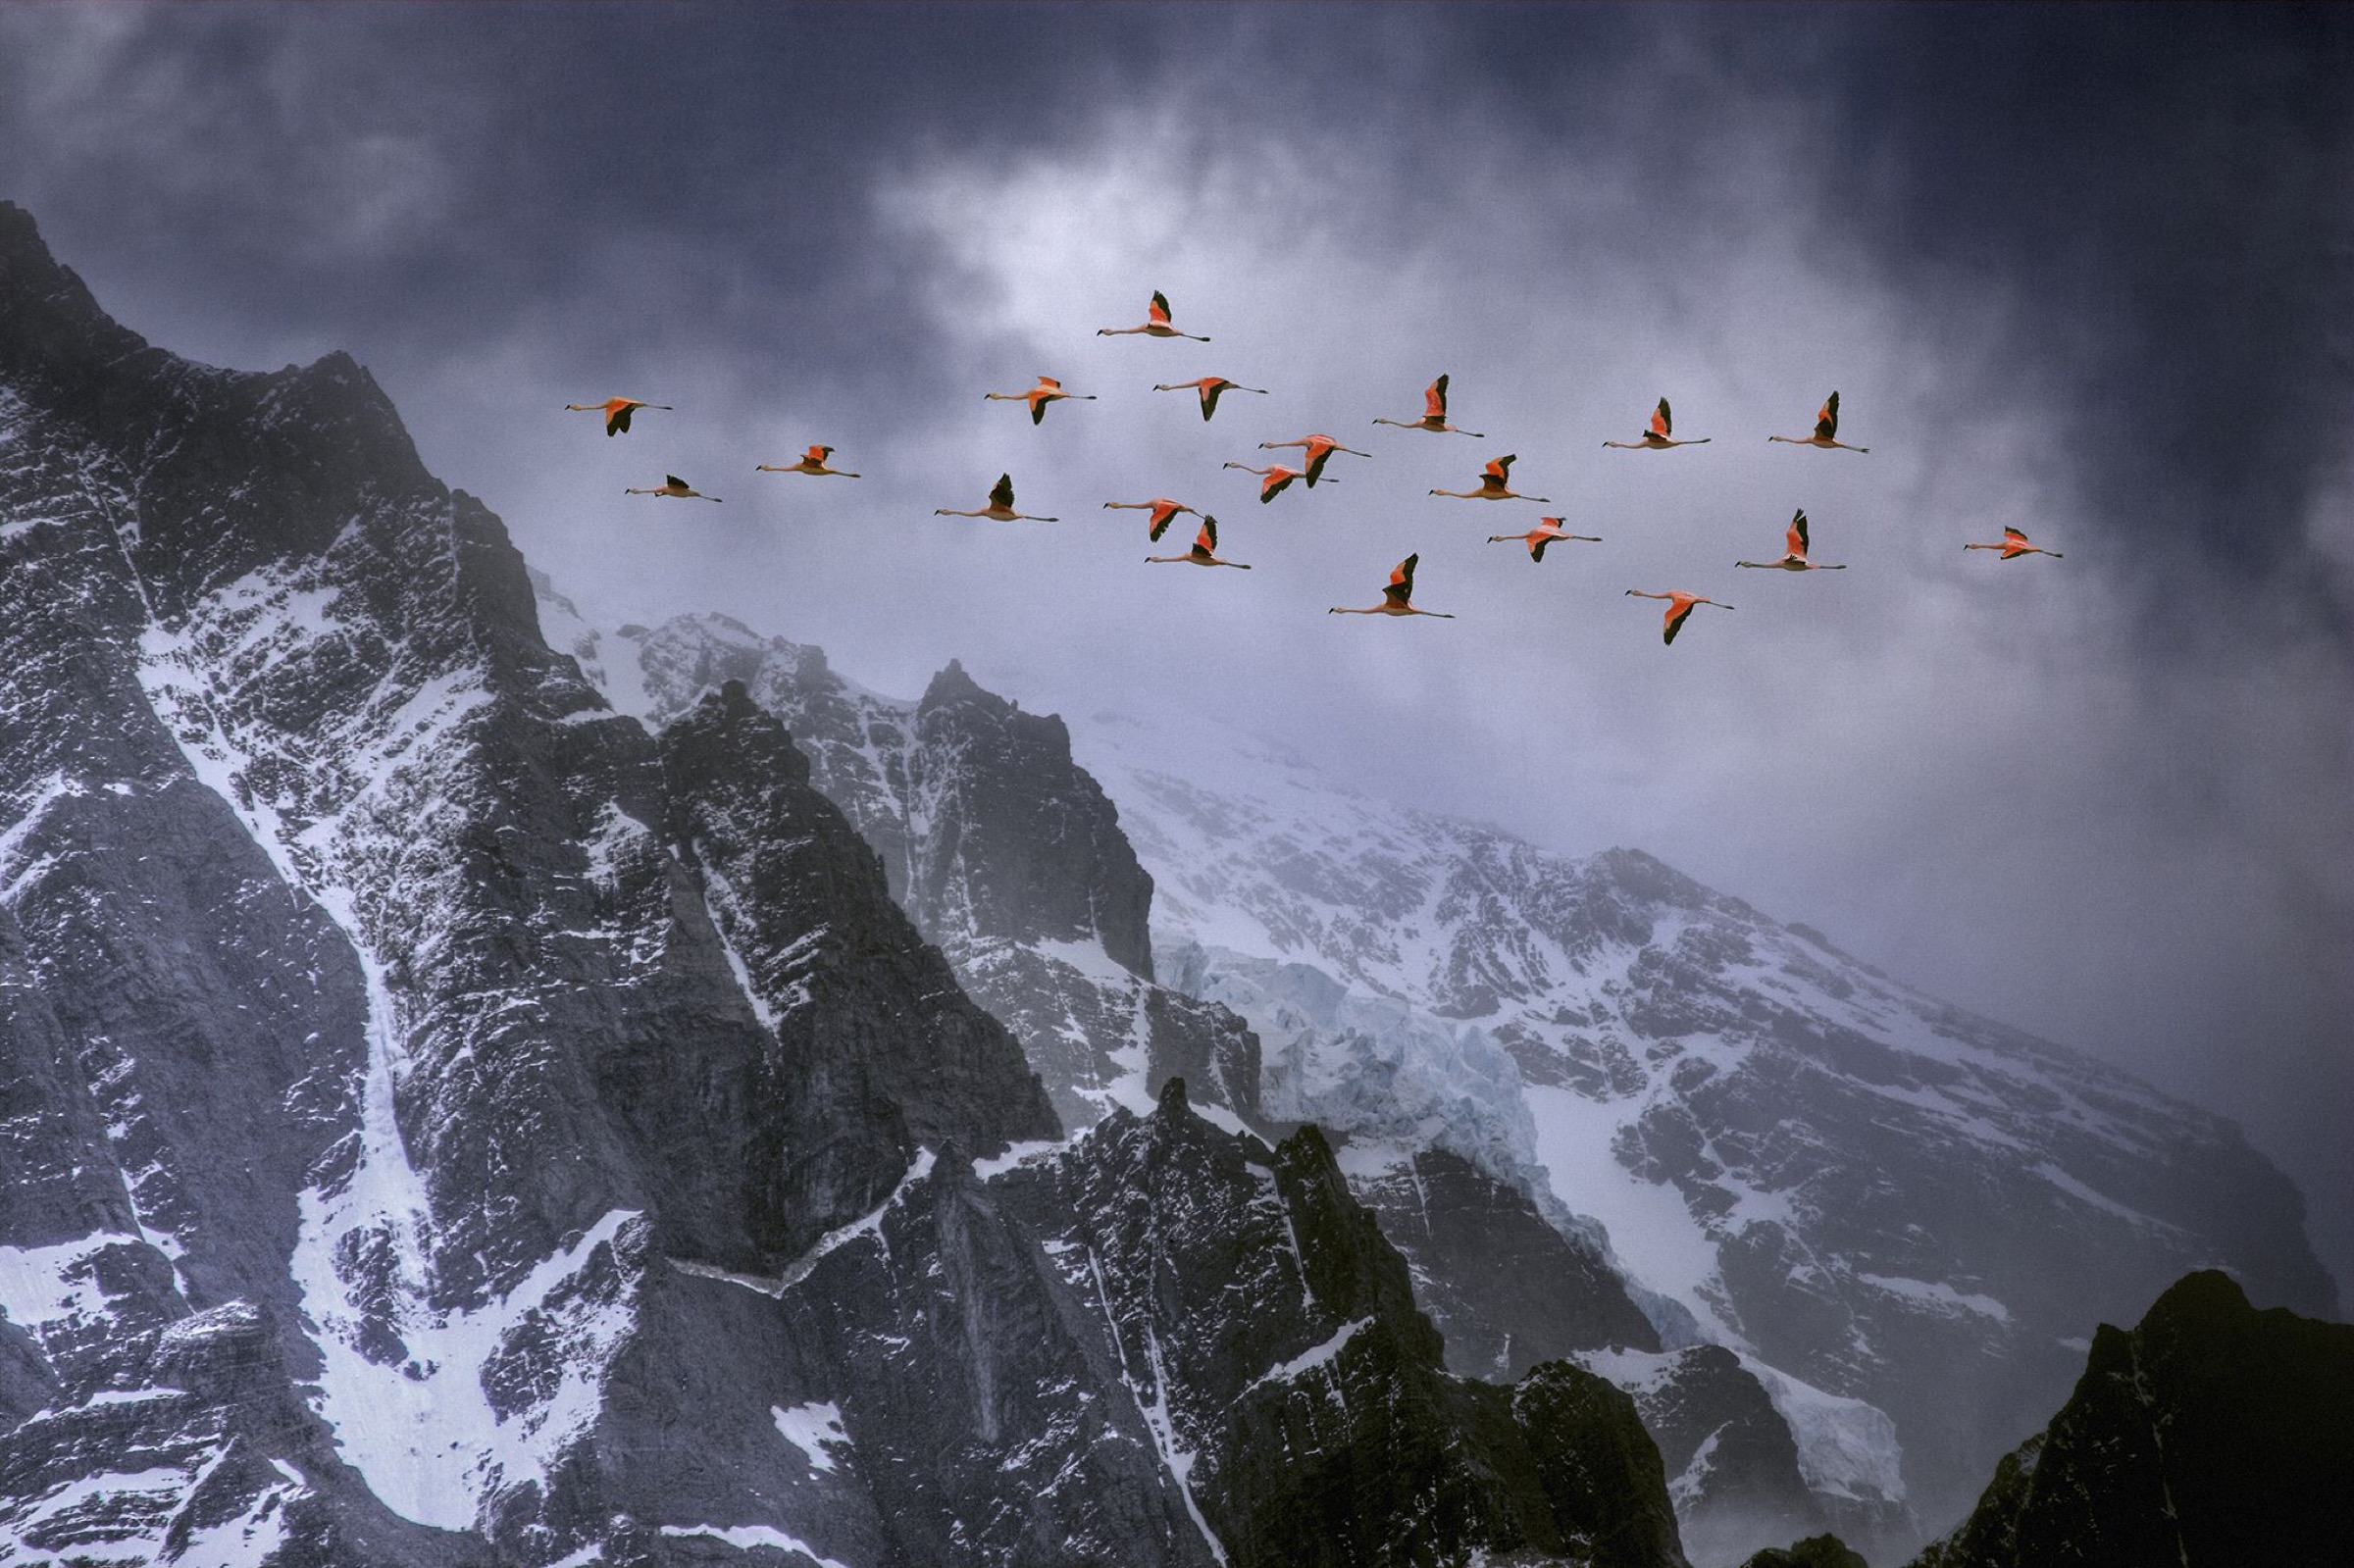 Chilean flamingos (Phoenicopterus chilensis) in flight over mountain peaks with glacier in the distance, Torres Del Paine National Park, Chile. Winner of Landscape category, Nature's Best / Windland Smith Rice Awards competition 2010